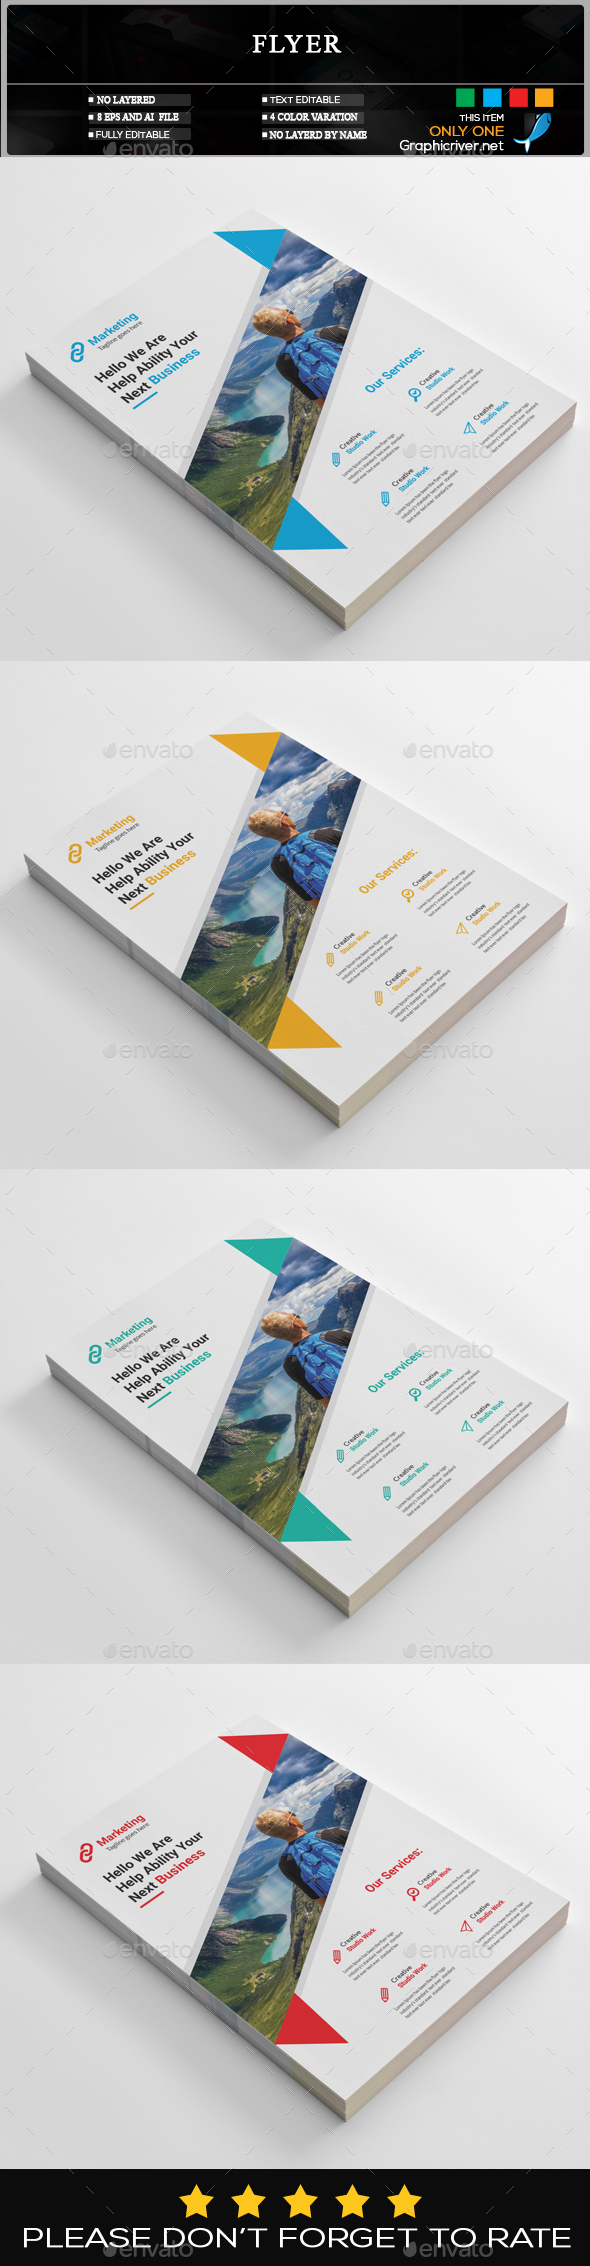 GraphicRiver Flyer 20462435